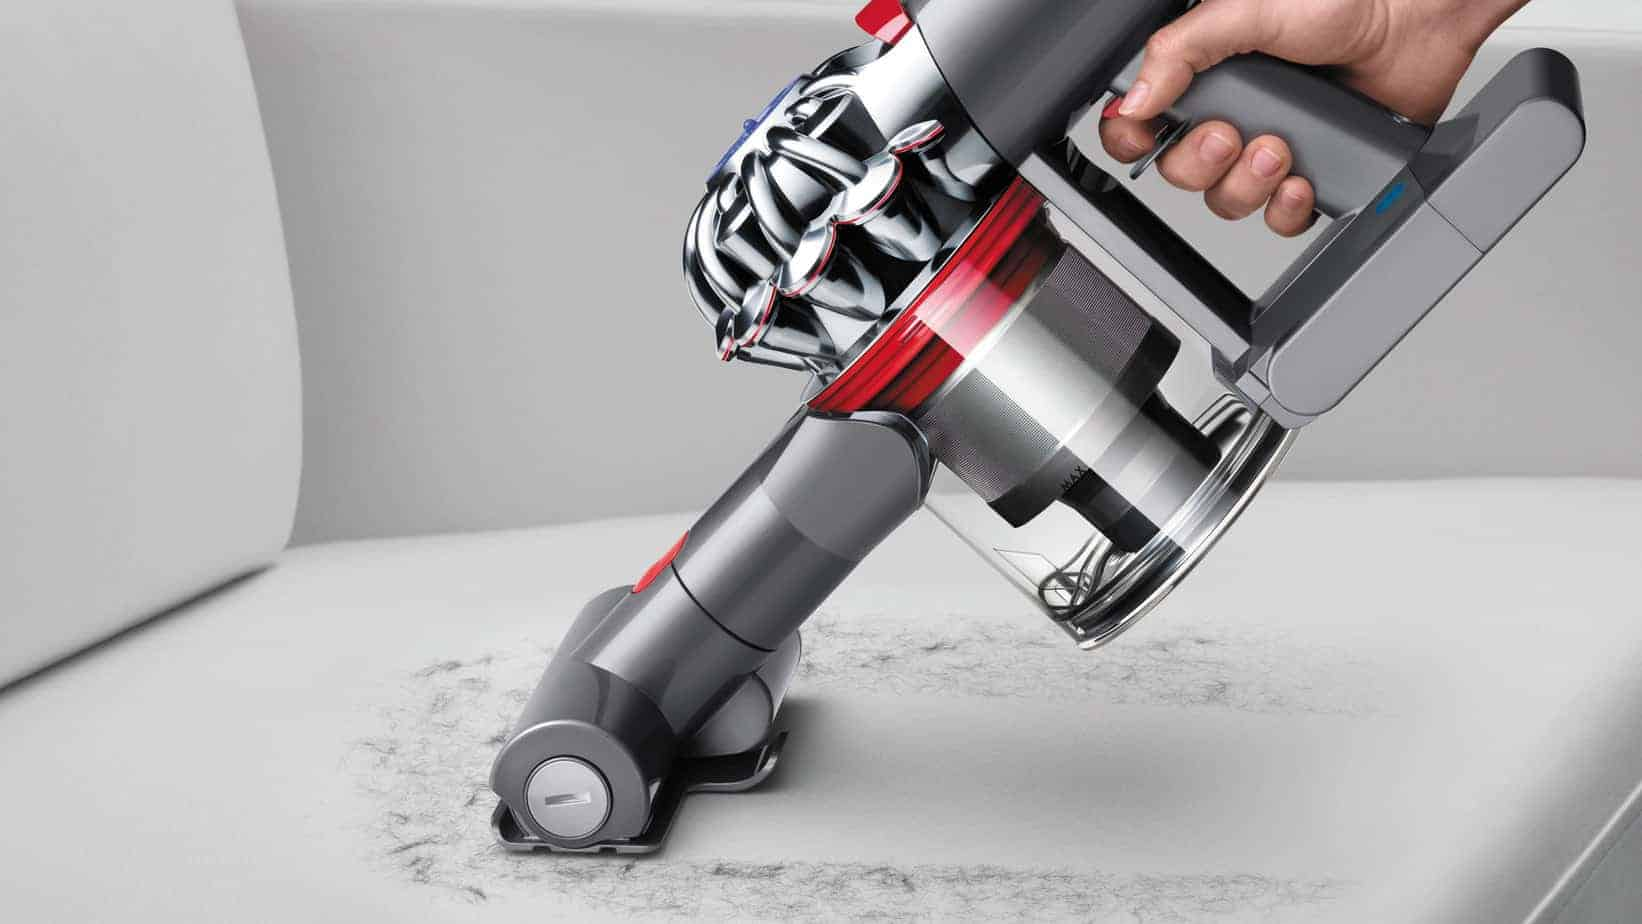 Cordless Vacuum Cleaner Batteries – Which Should You Choose